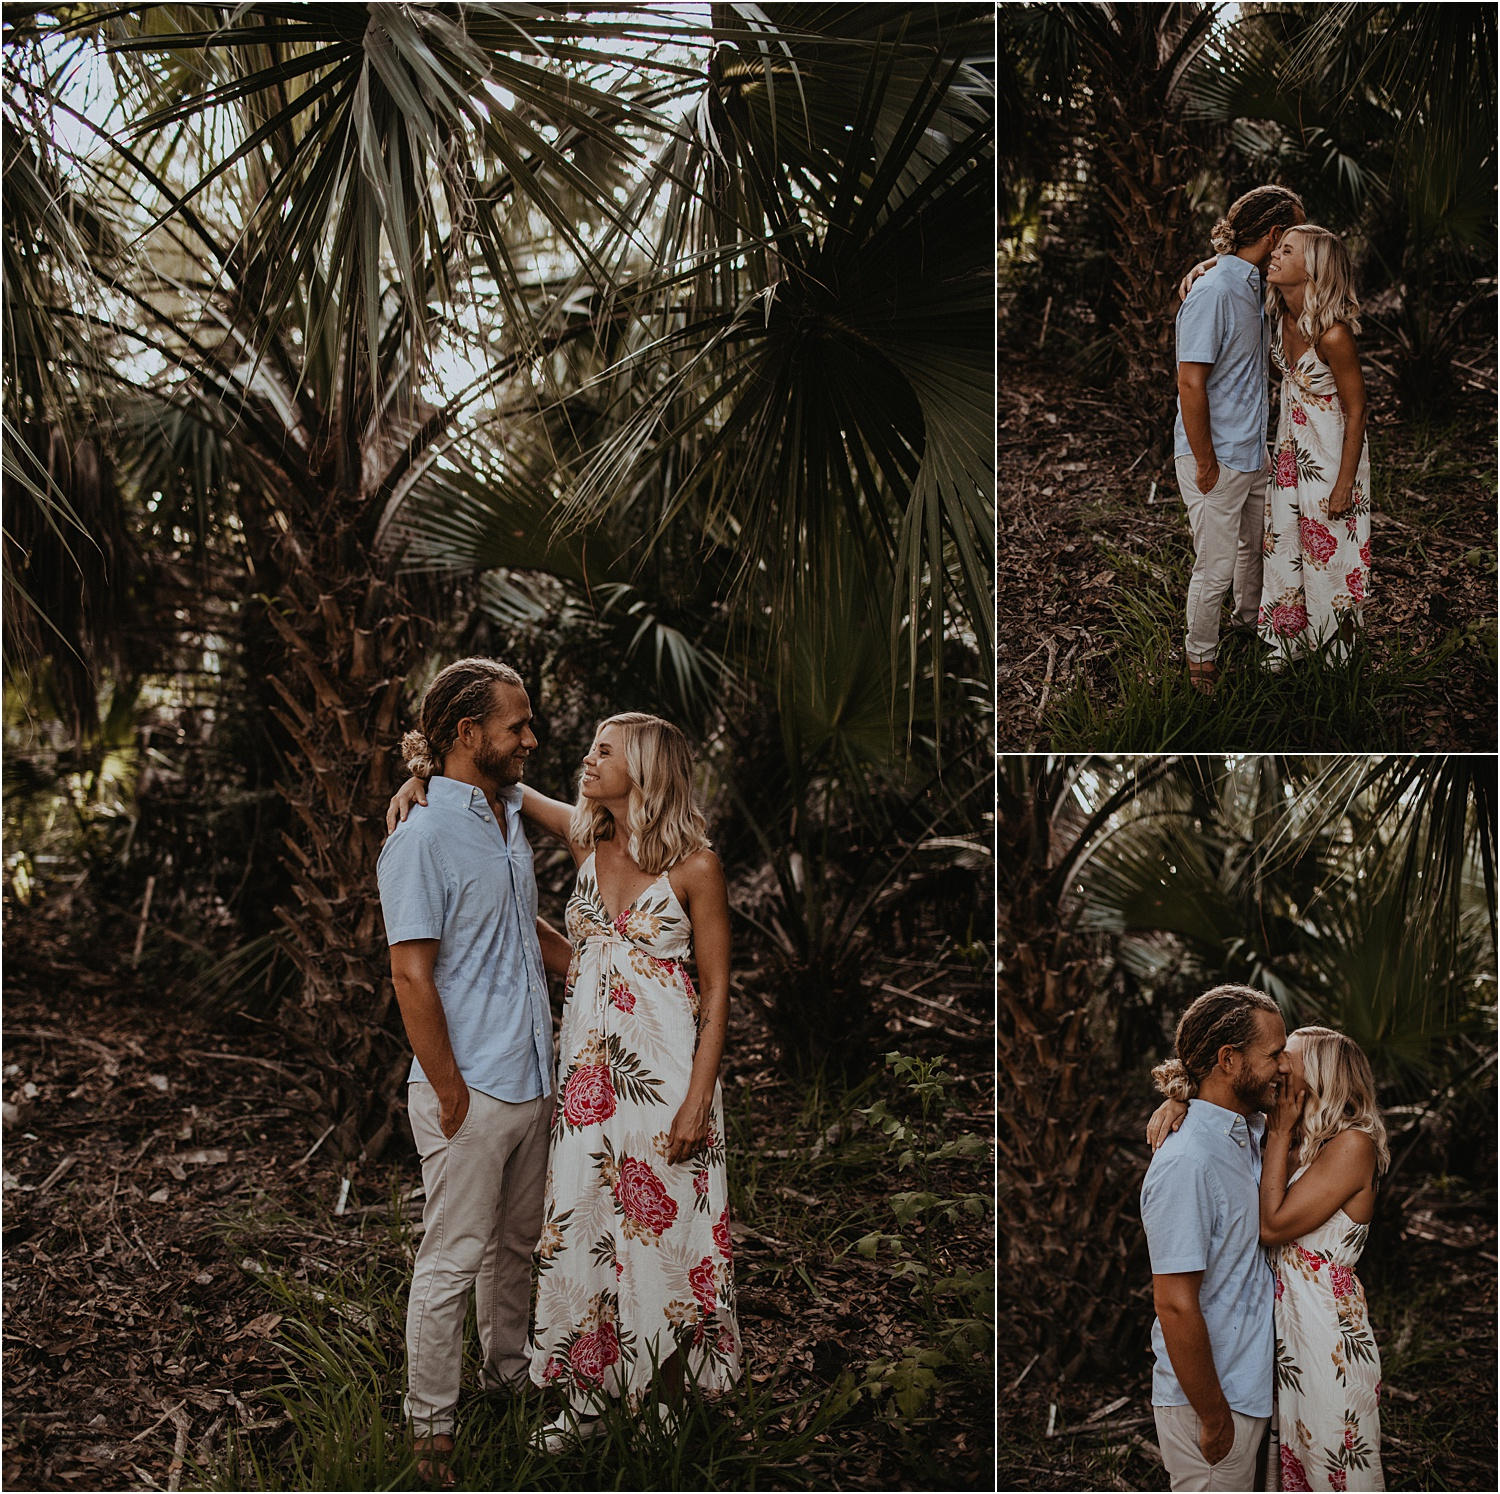 dutton-island-preserve-engagement-session-jacksonville-florida_0766.jpg